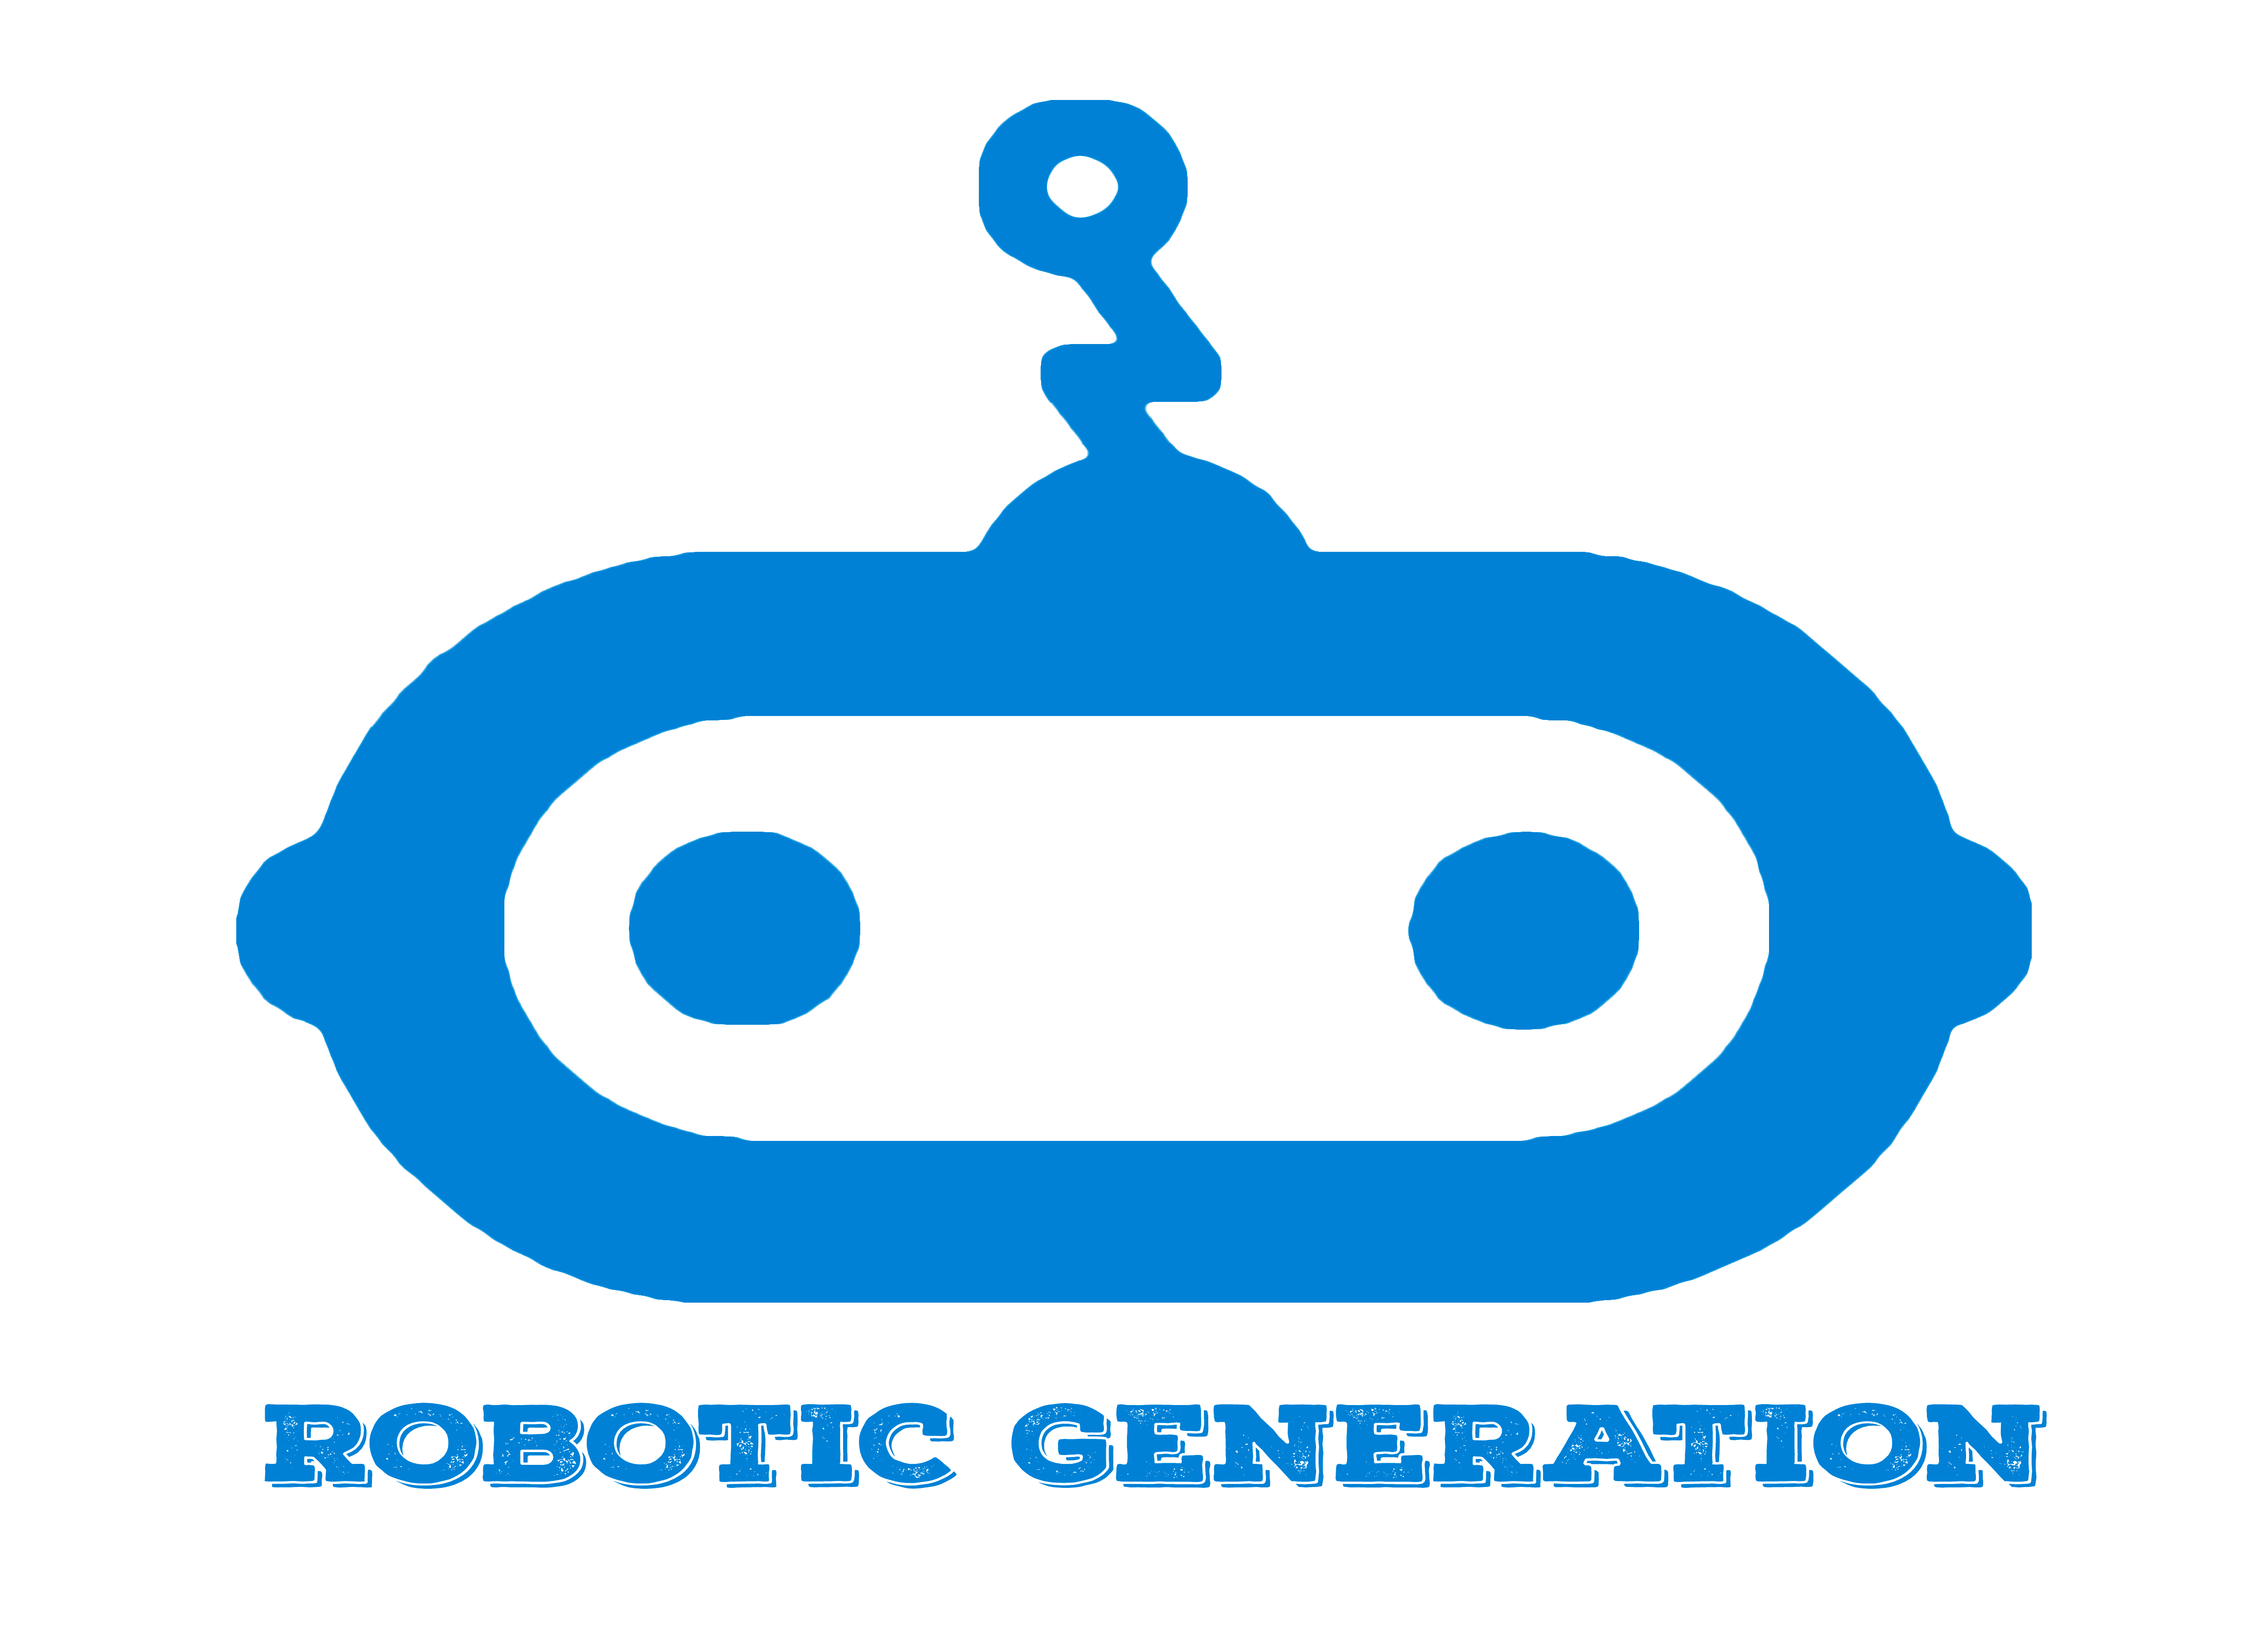 Robotic Generation